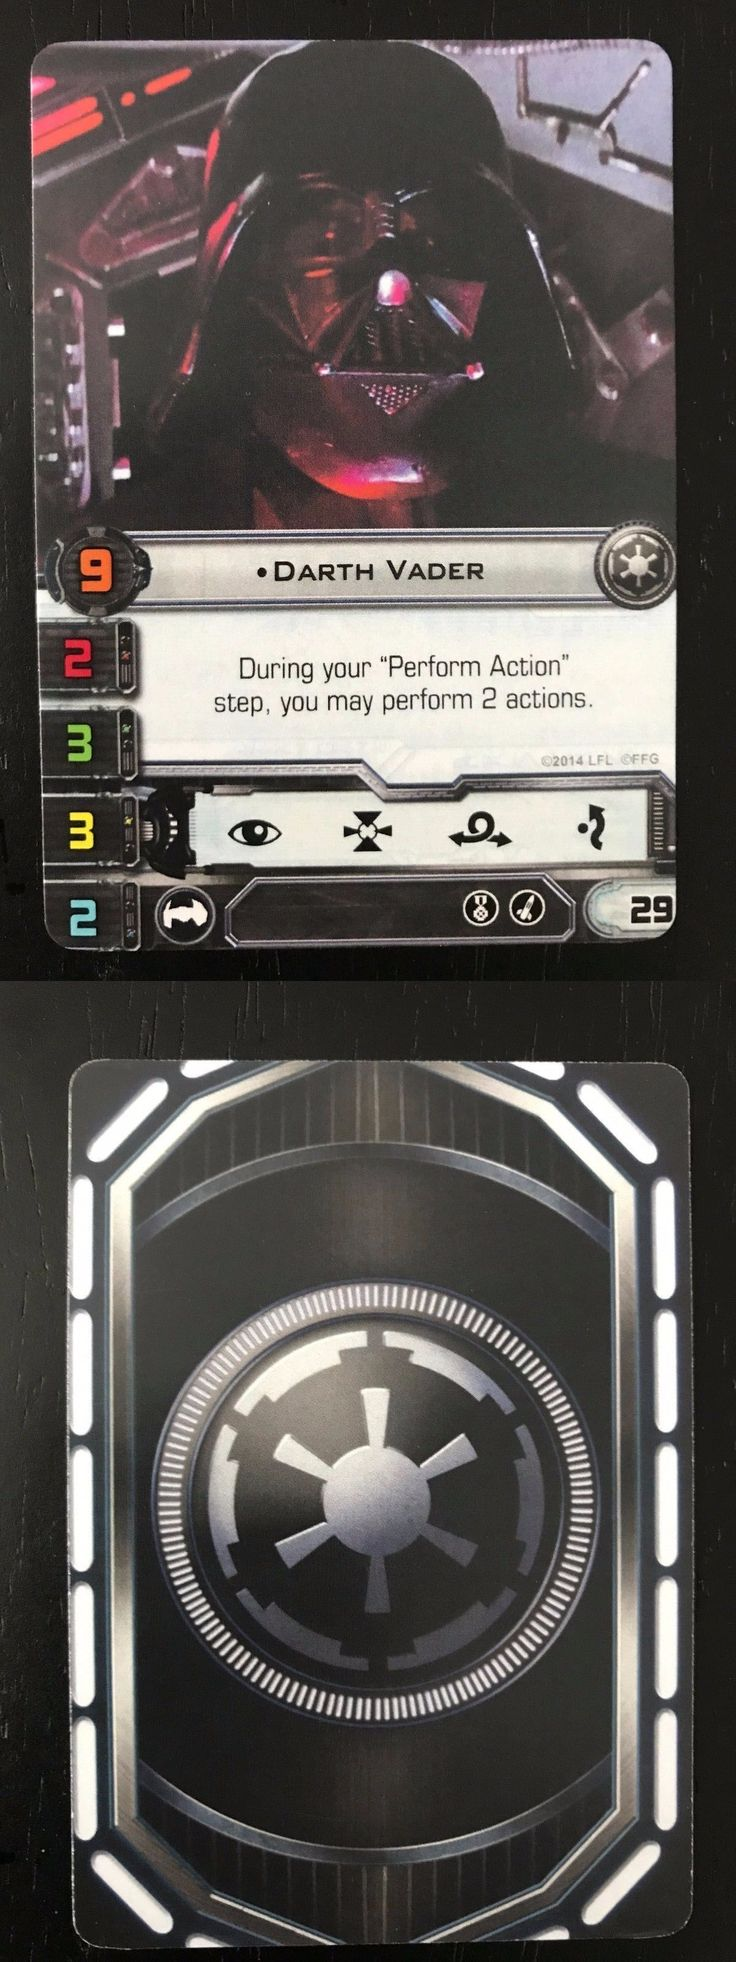 Other Star Wars Mini Games 158727: Star Wars X-Wing Darth Vader Promo 2014 World Championship (Ffg Worlds) -> BUY IT NOW ONLY: $75 on eBay!